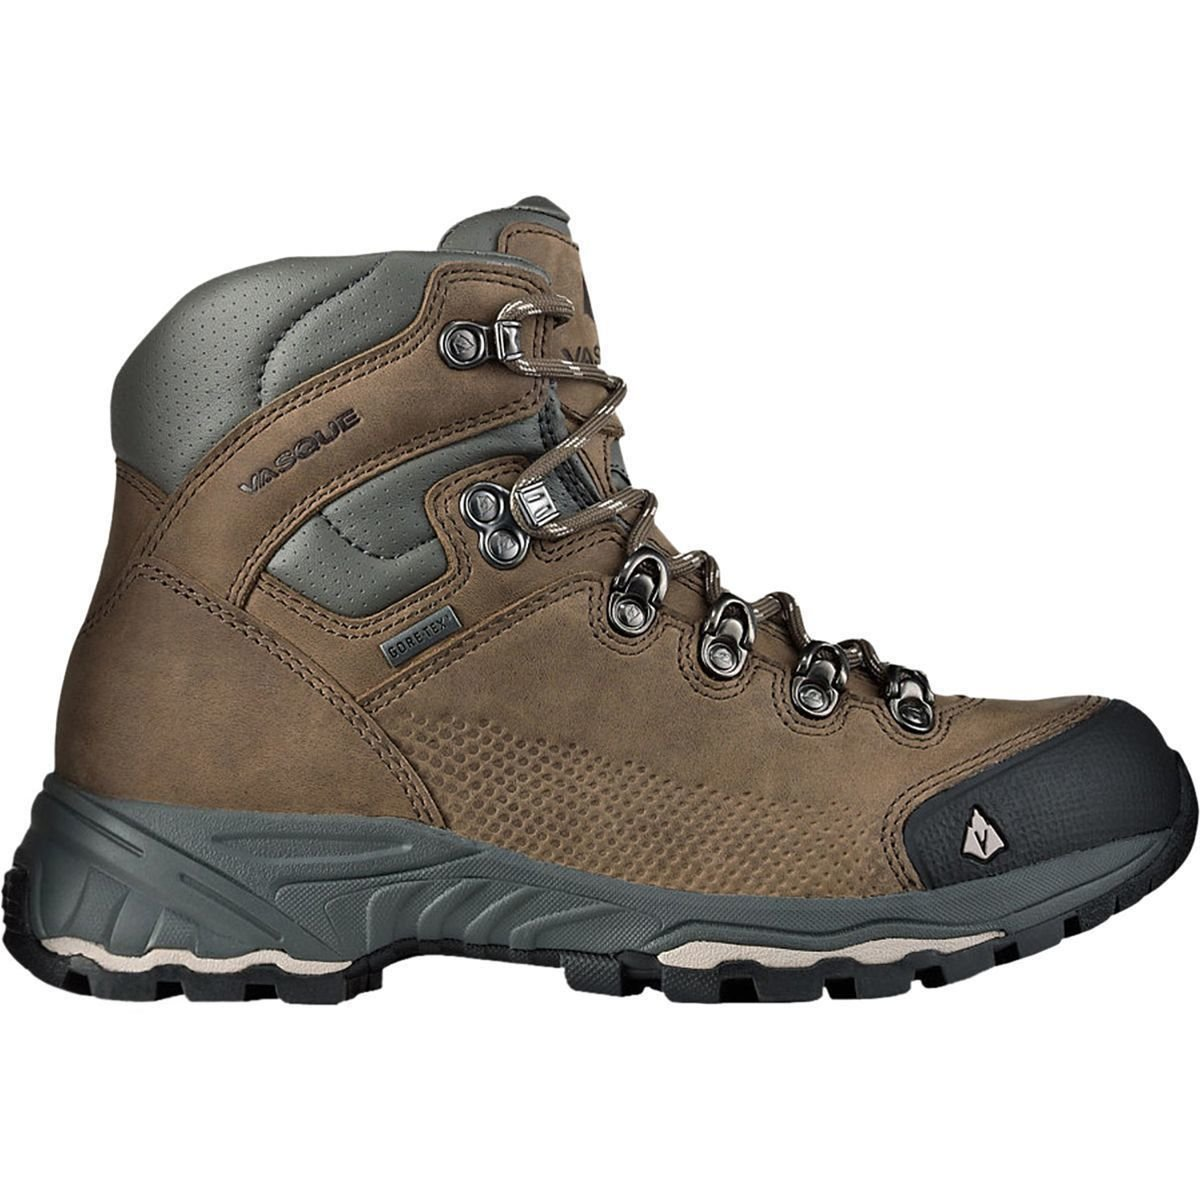 Vasque St. Elias GTX Backpacking Boot - Women's Bungee Cord/Silver Cloud, 9.0